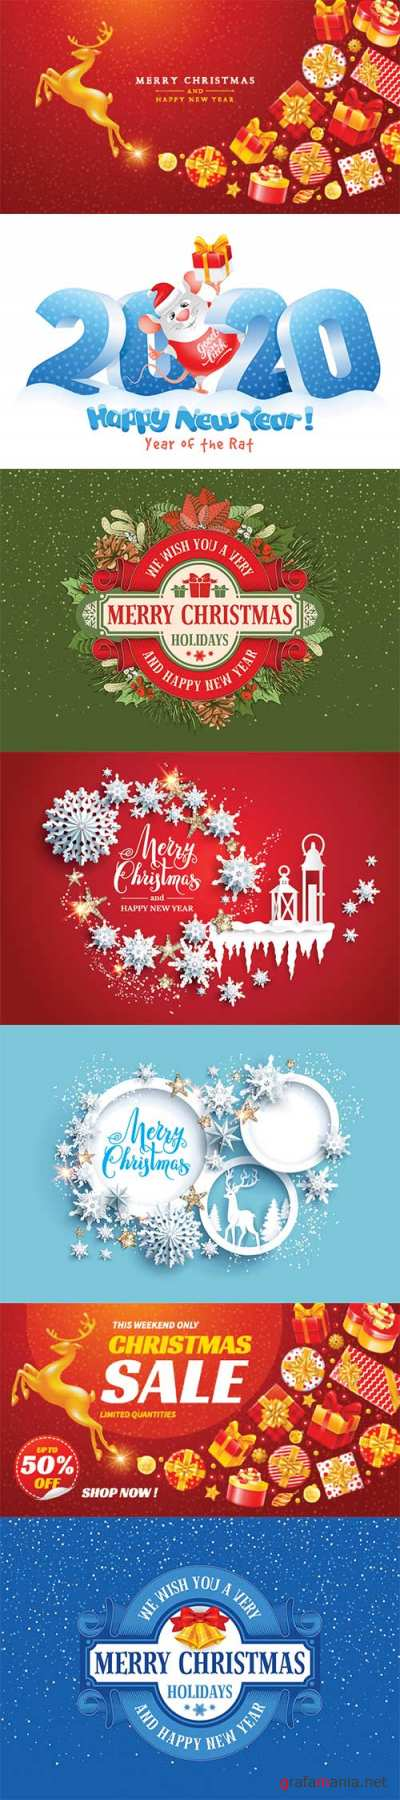 2020 Happy New Year and Christmas vector illustration